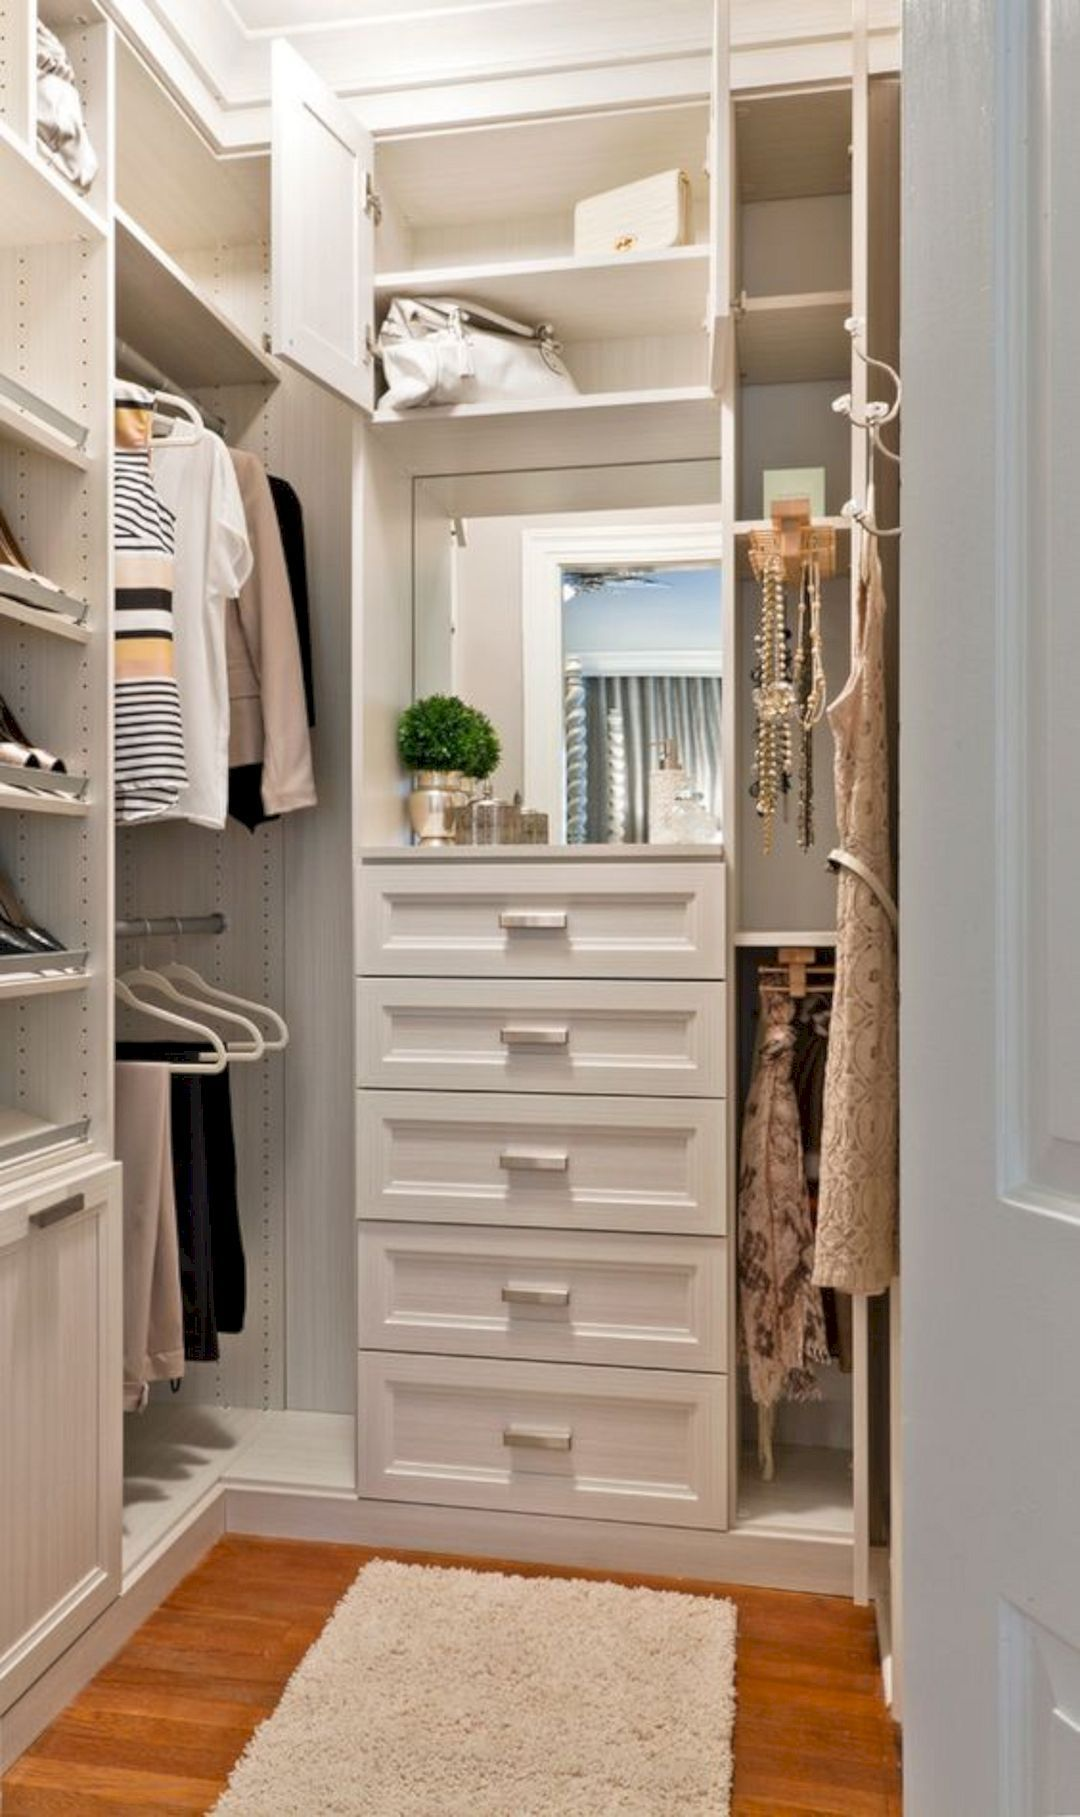 walk upgrade saver do space how organize sliding ideas door full organizers to organization it a yourself of with painting closet size bypass hangers doors old in small